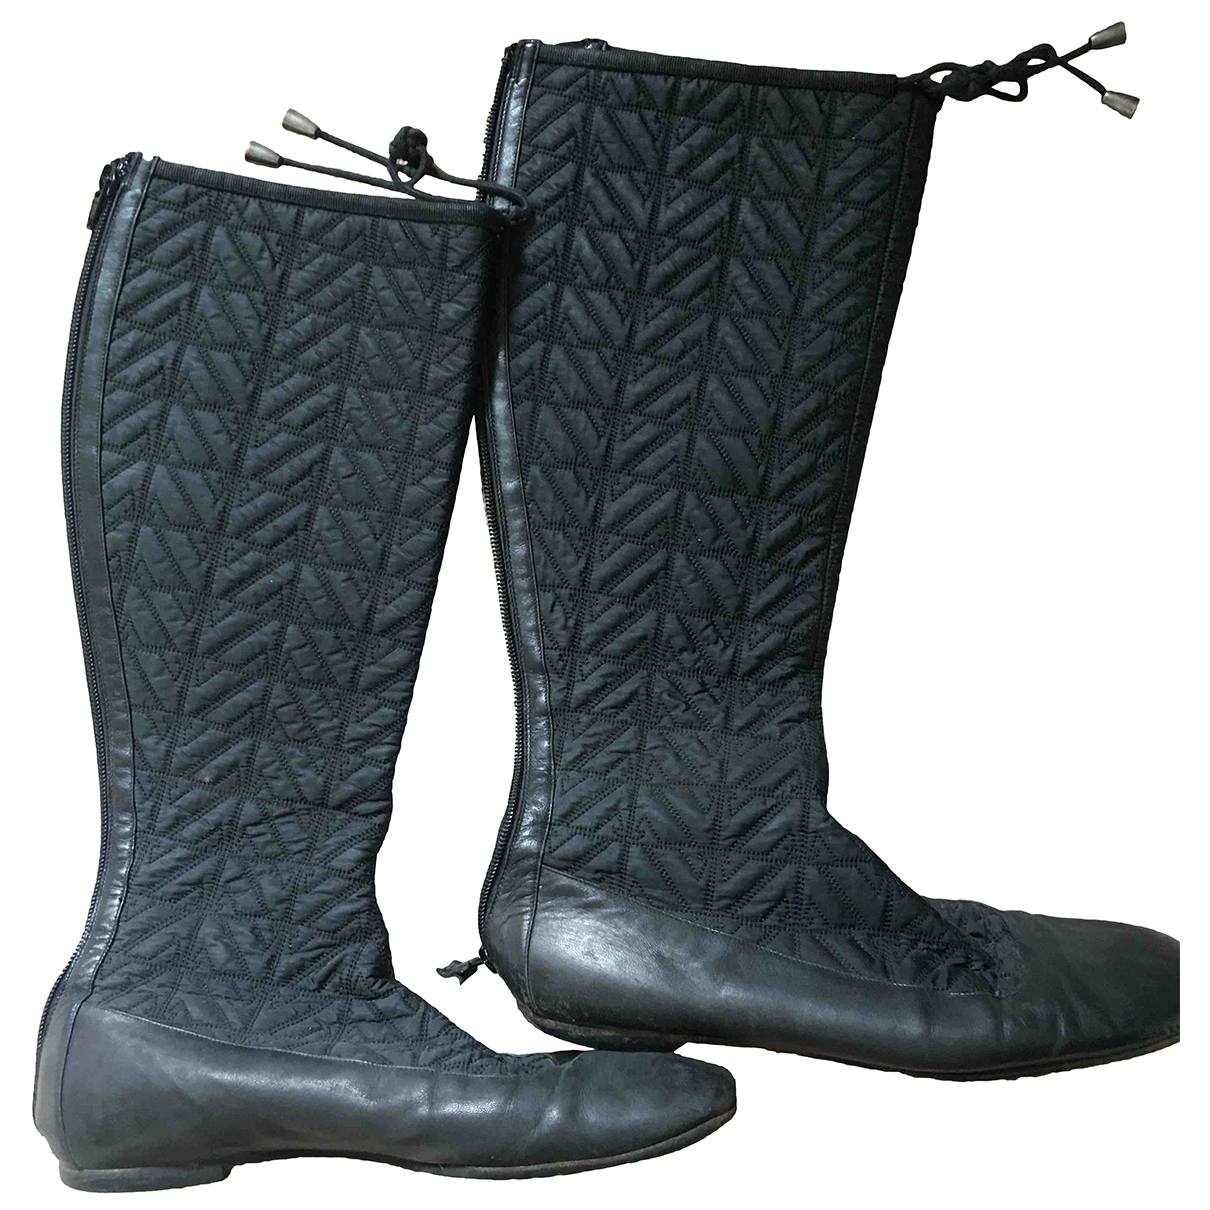 Emporio Armani \N Black Cloth Boots for Women 38 EU